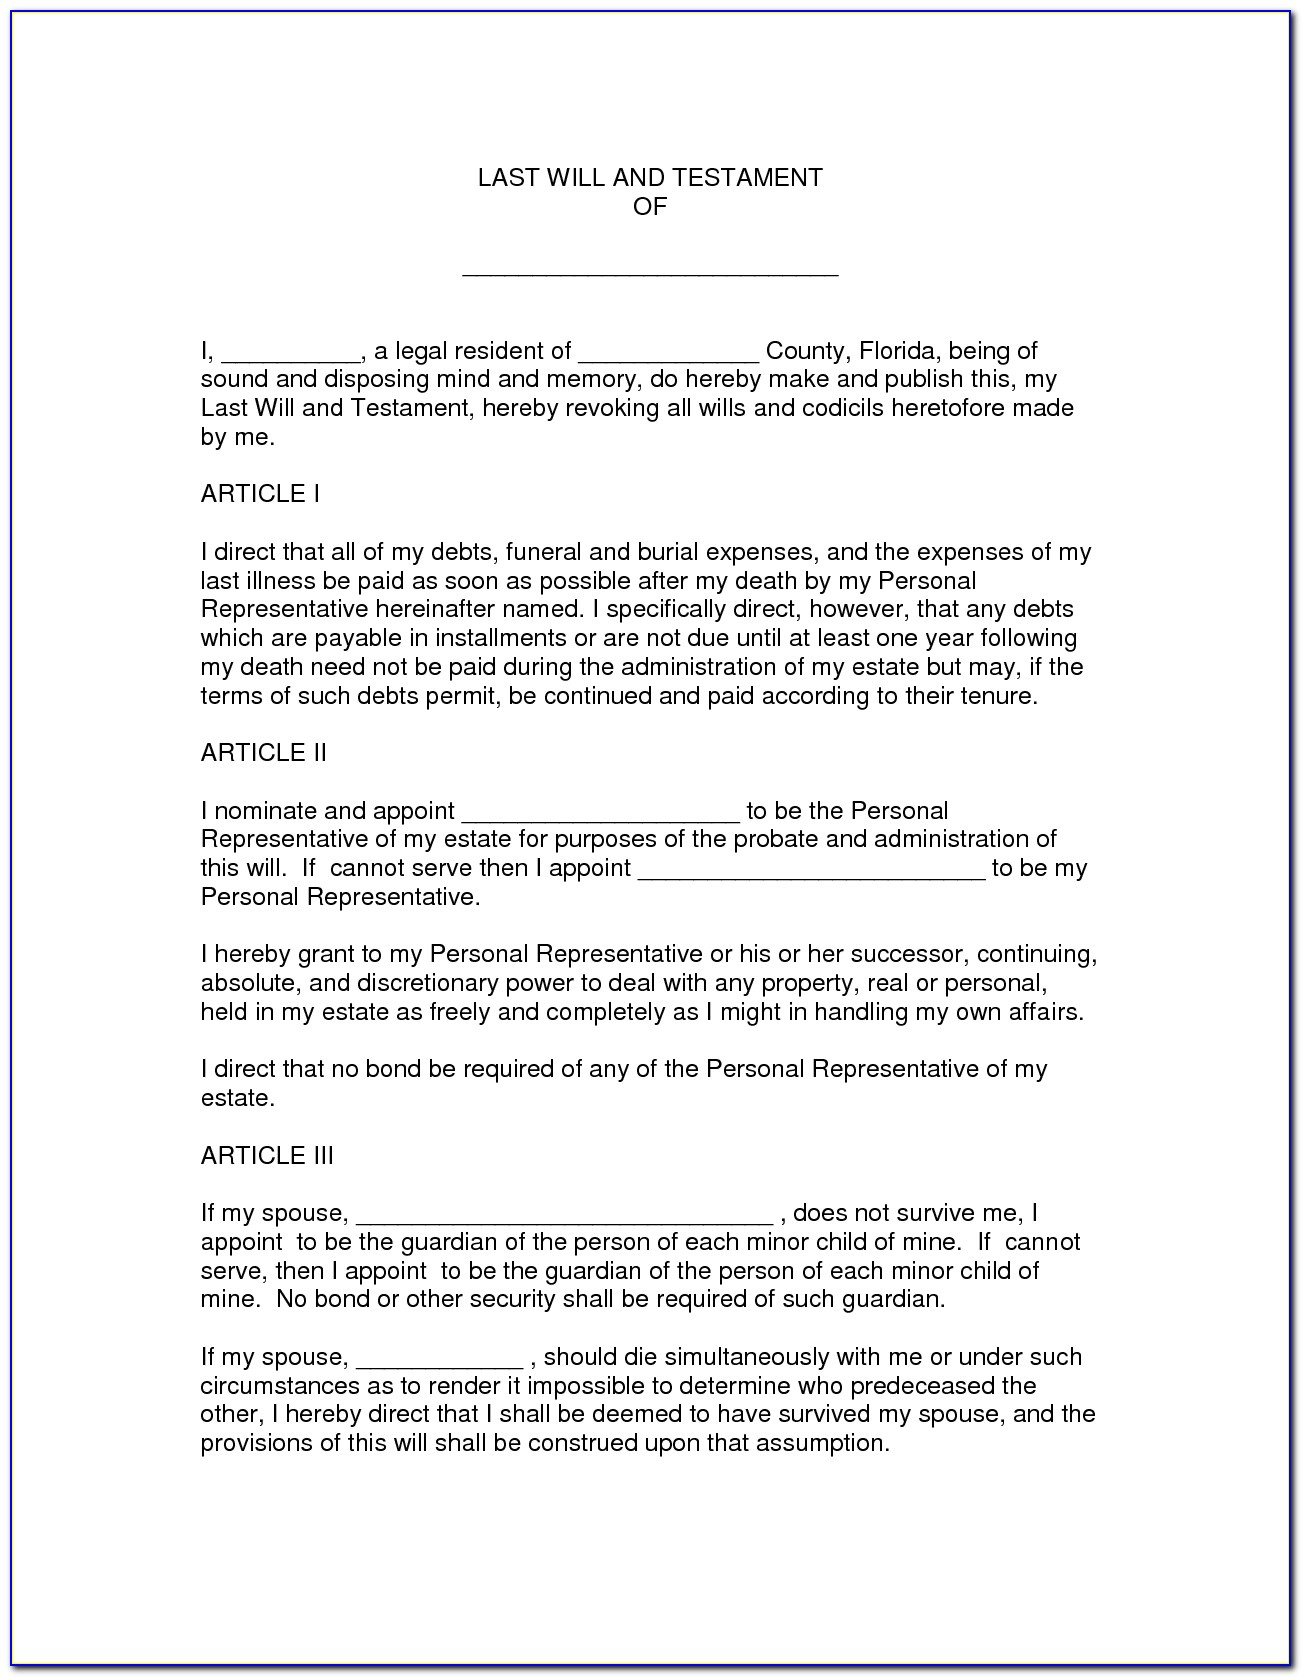 25 Images Of Florida Last Will Document Template | Crazybiker - Free Printable Florida Last Will And Testament Form